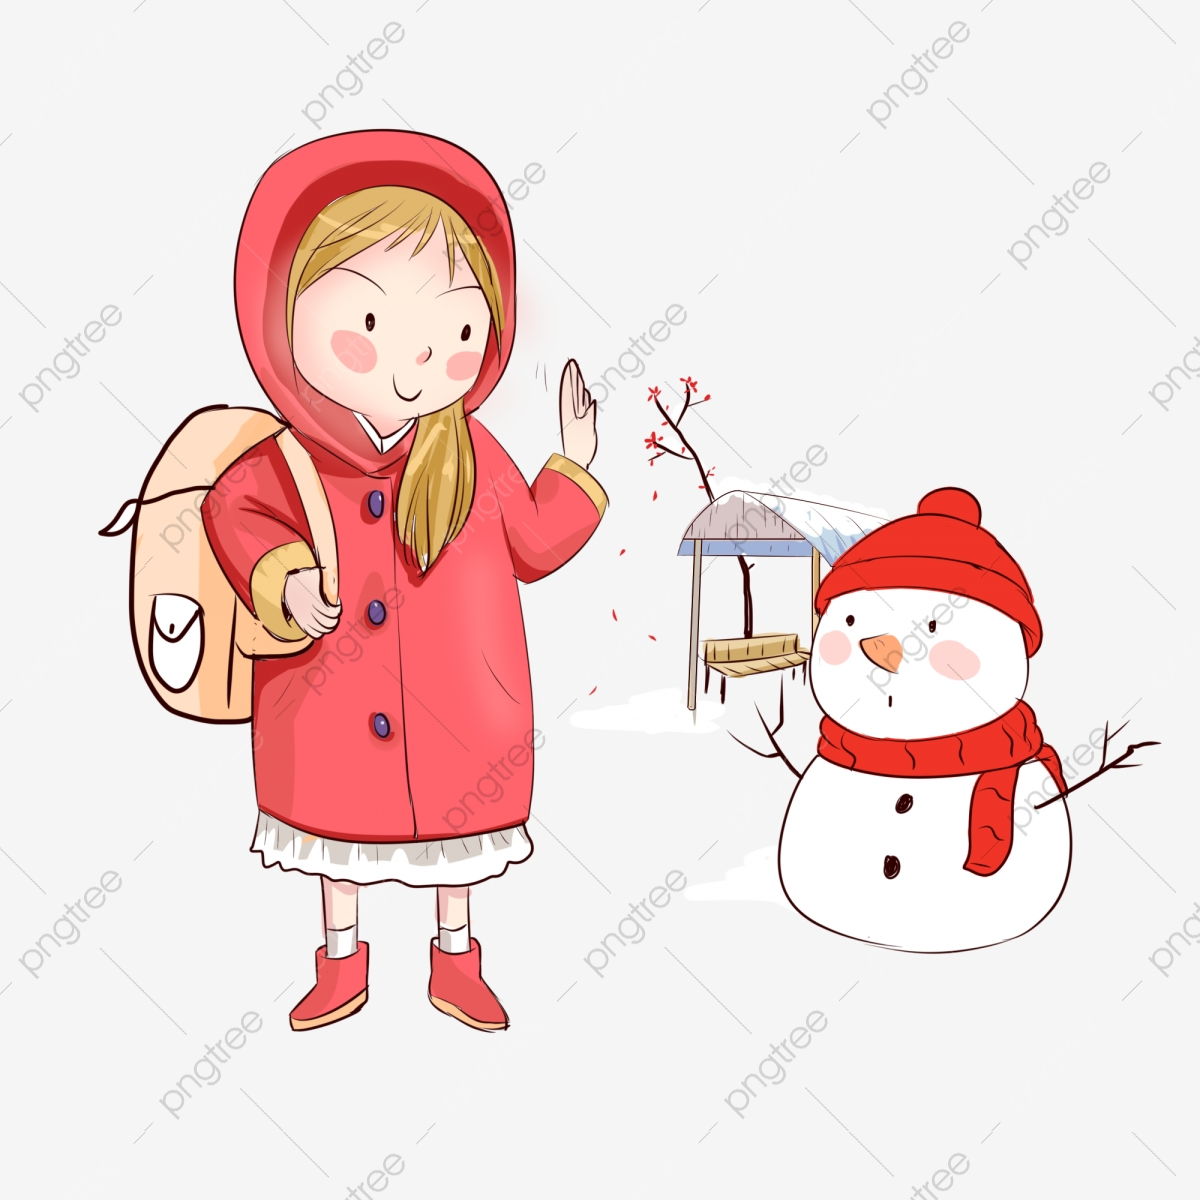 Winter clipart travel. Character illustration white snowman